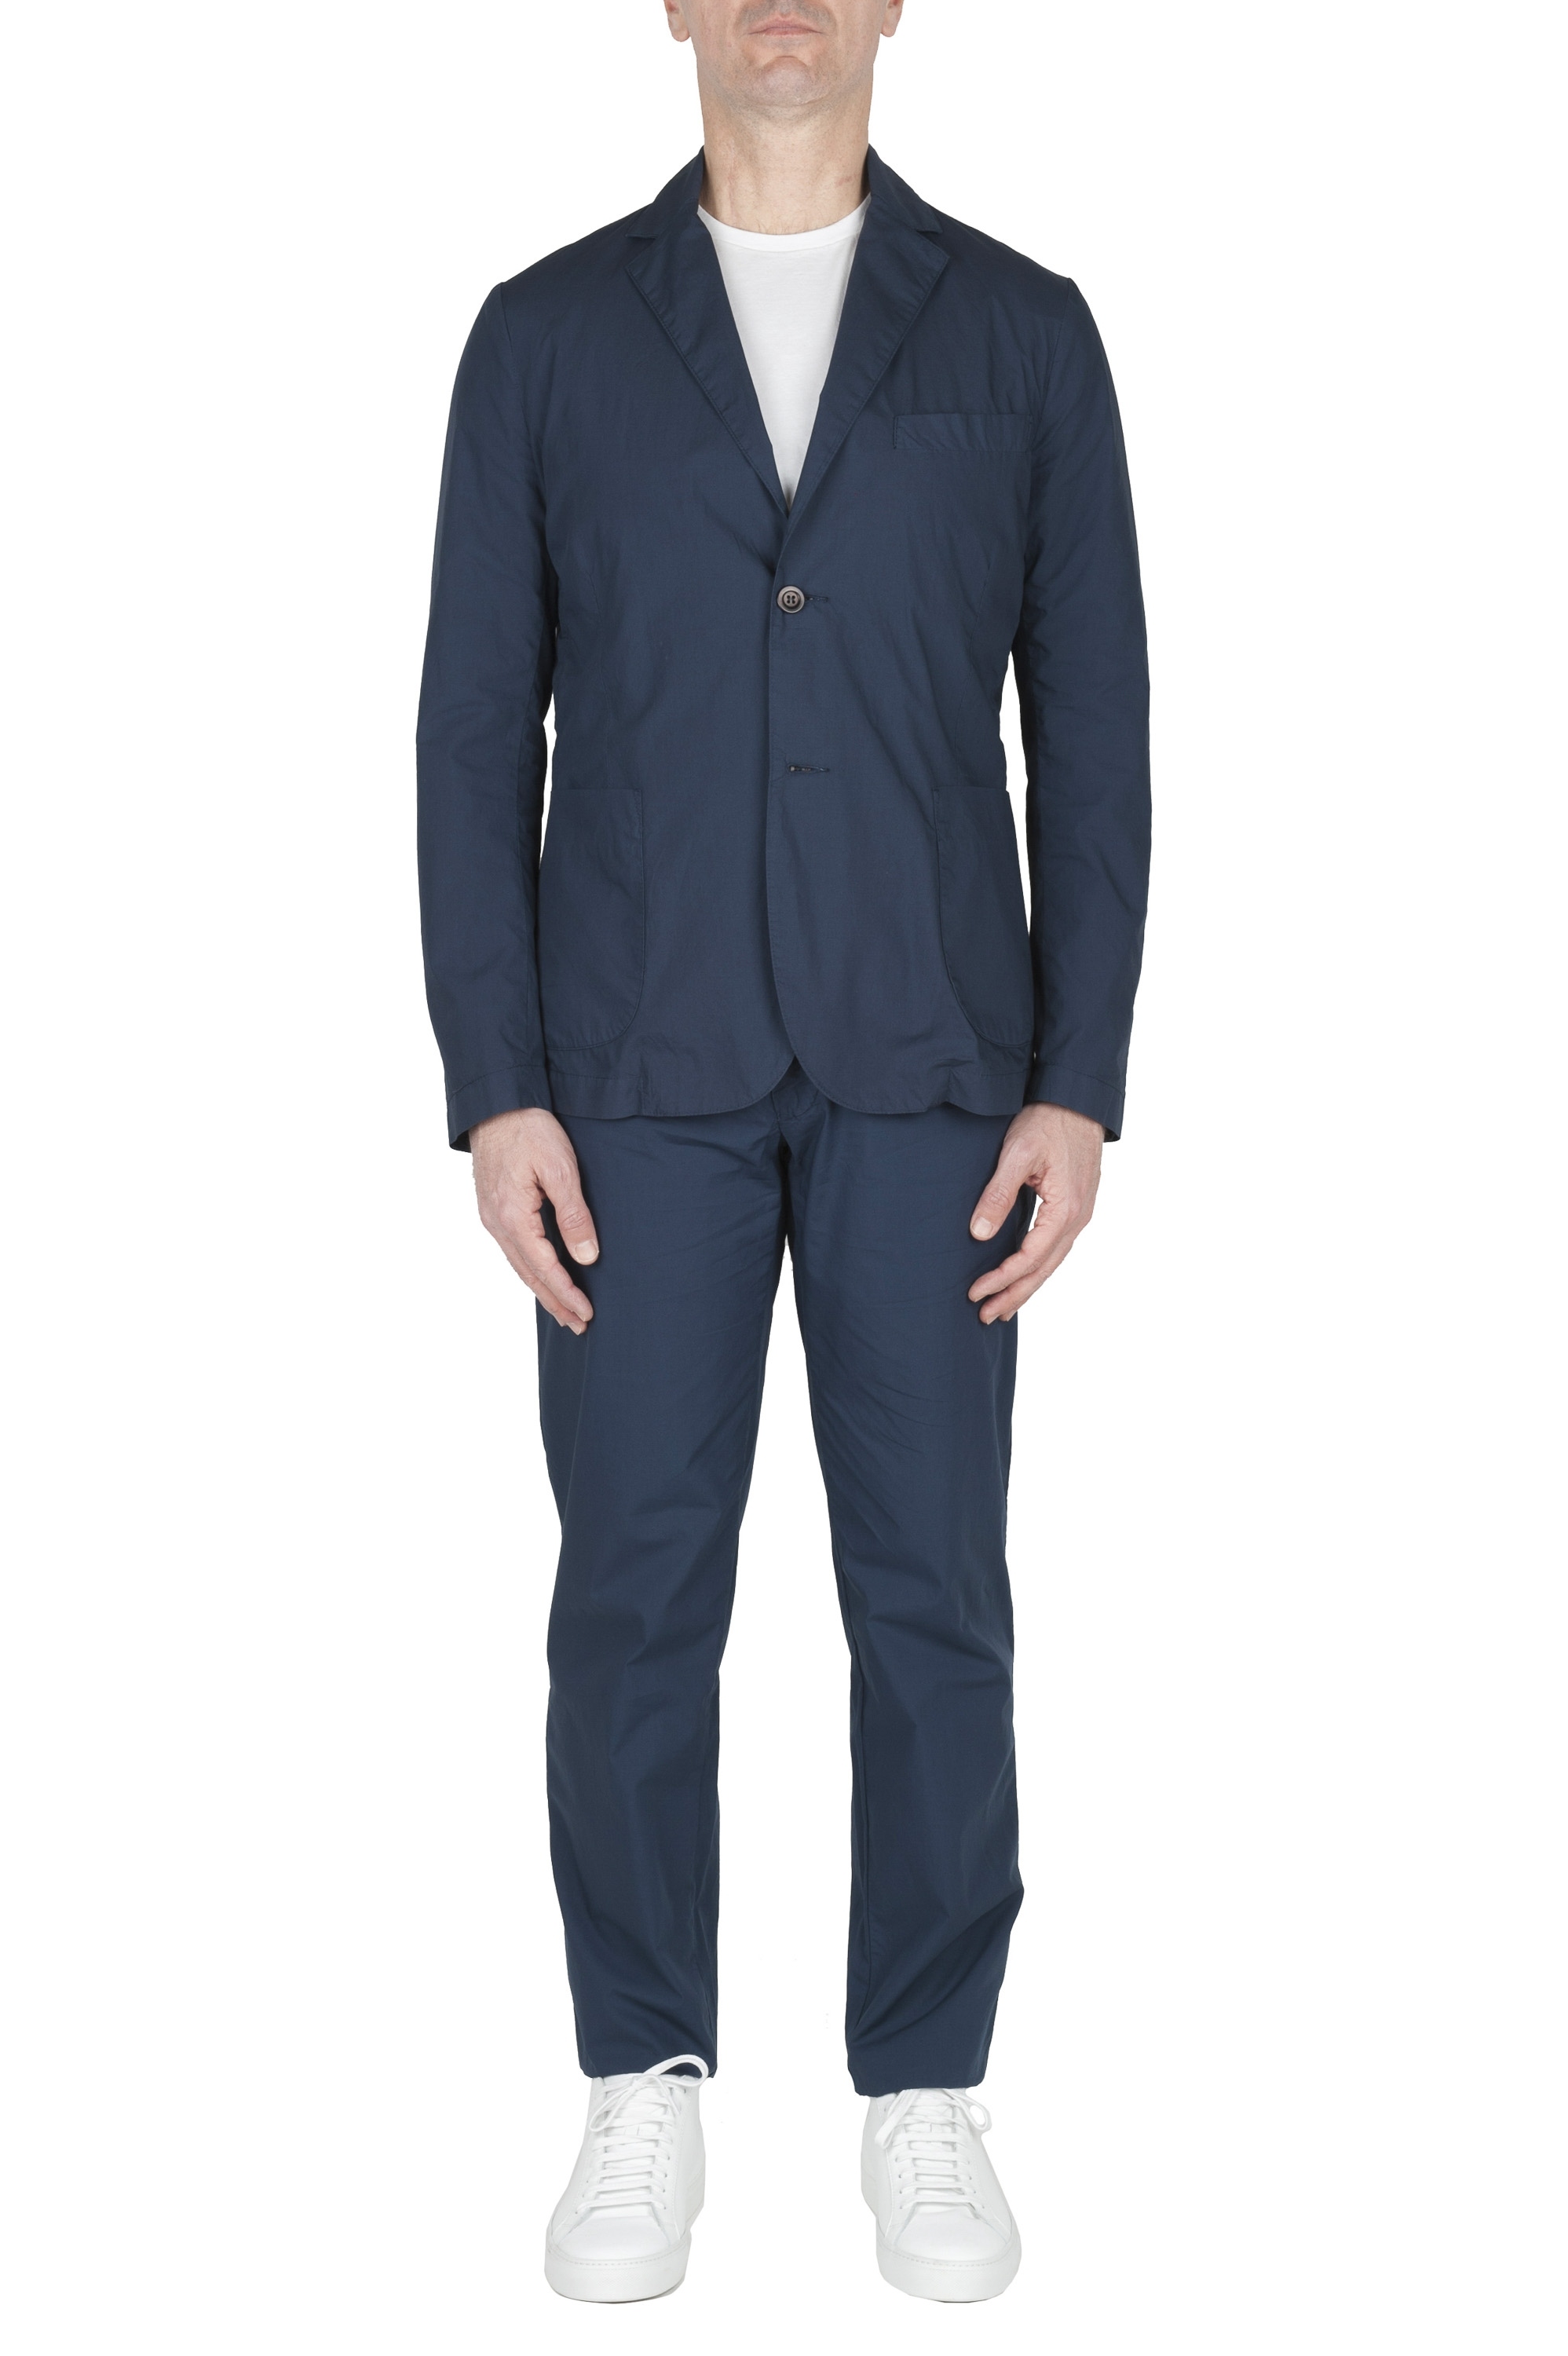 SBU 03059_2020AW Blue cotton sport suit blazer and trouser 01